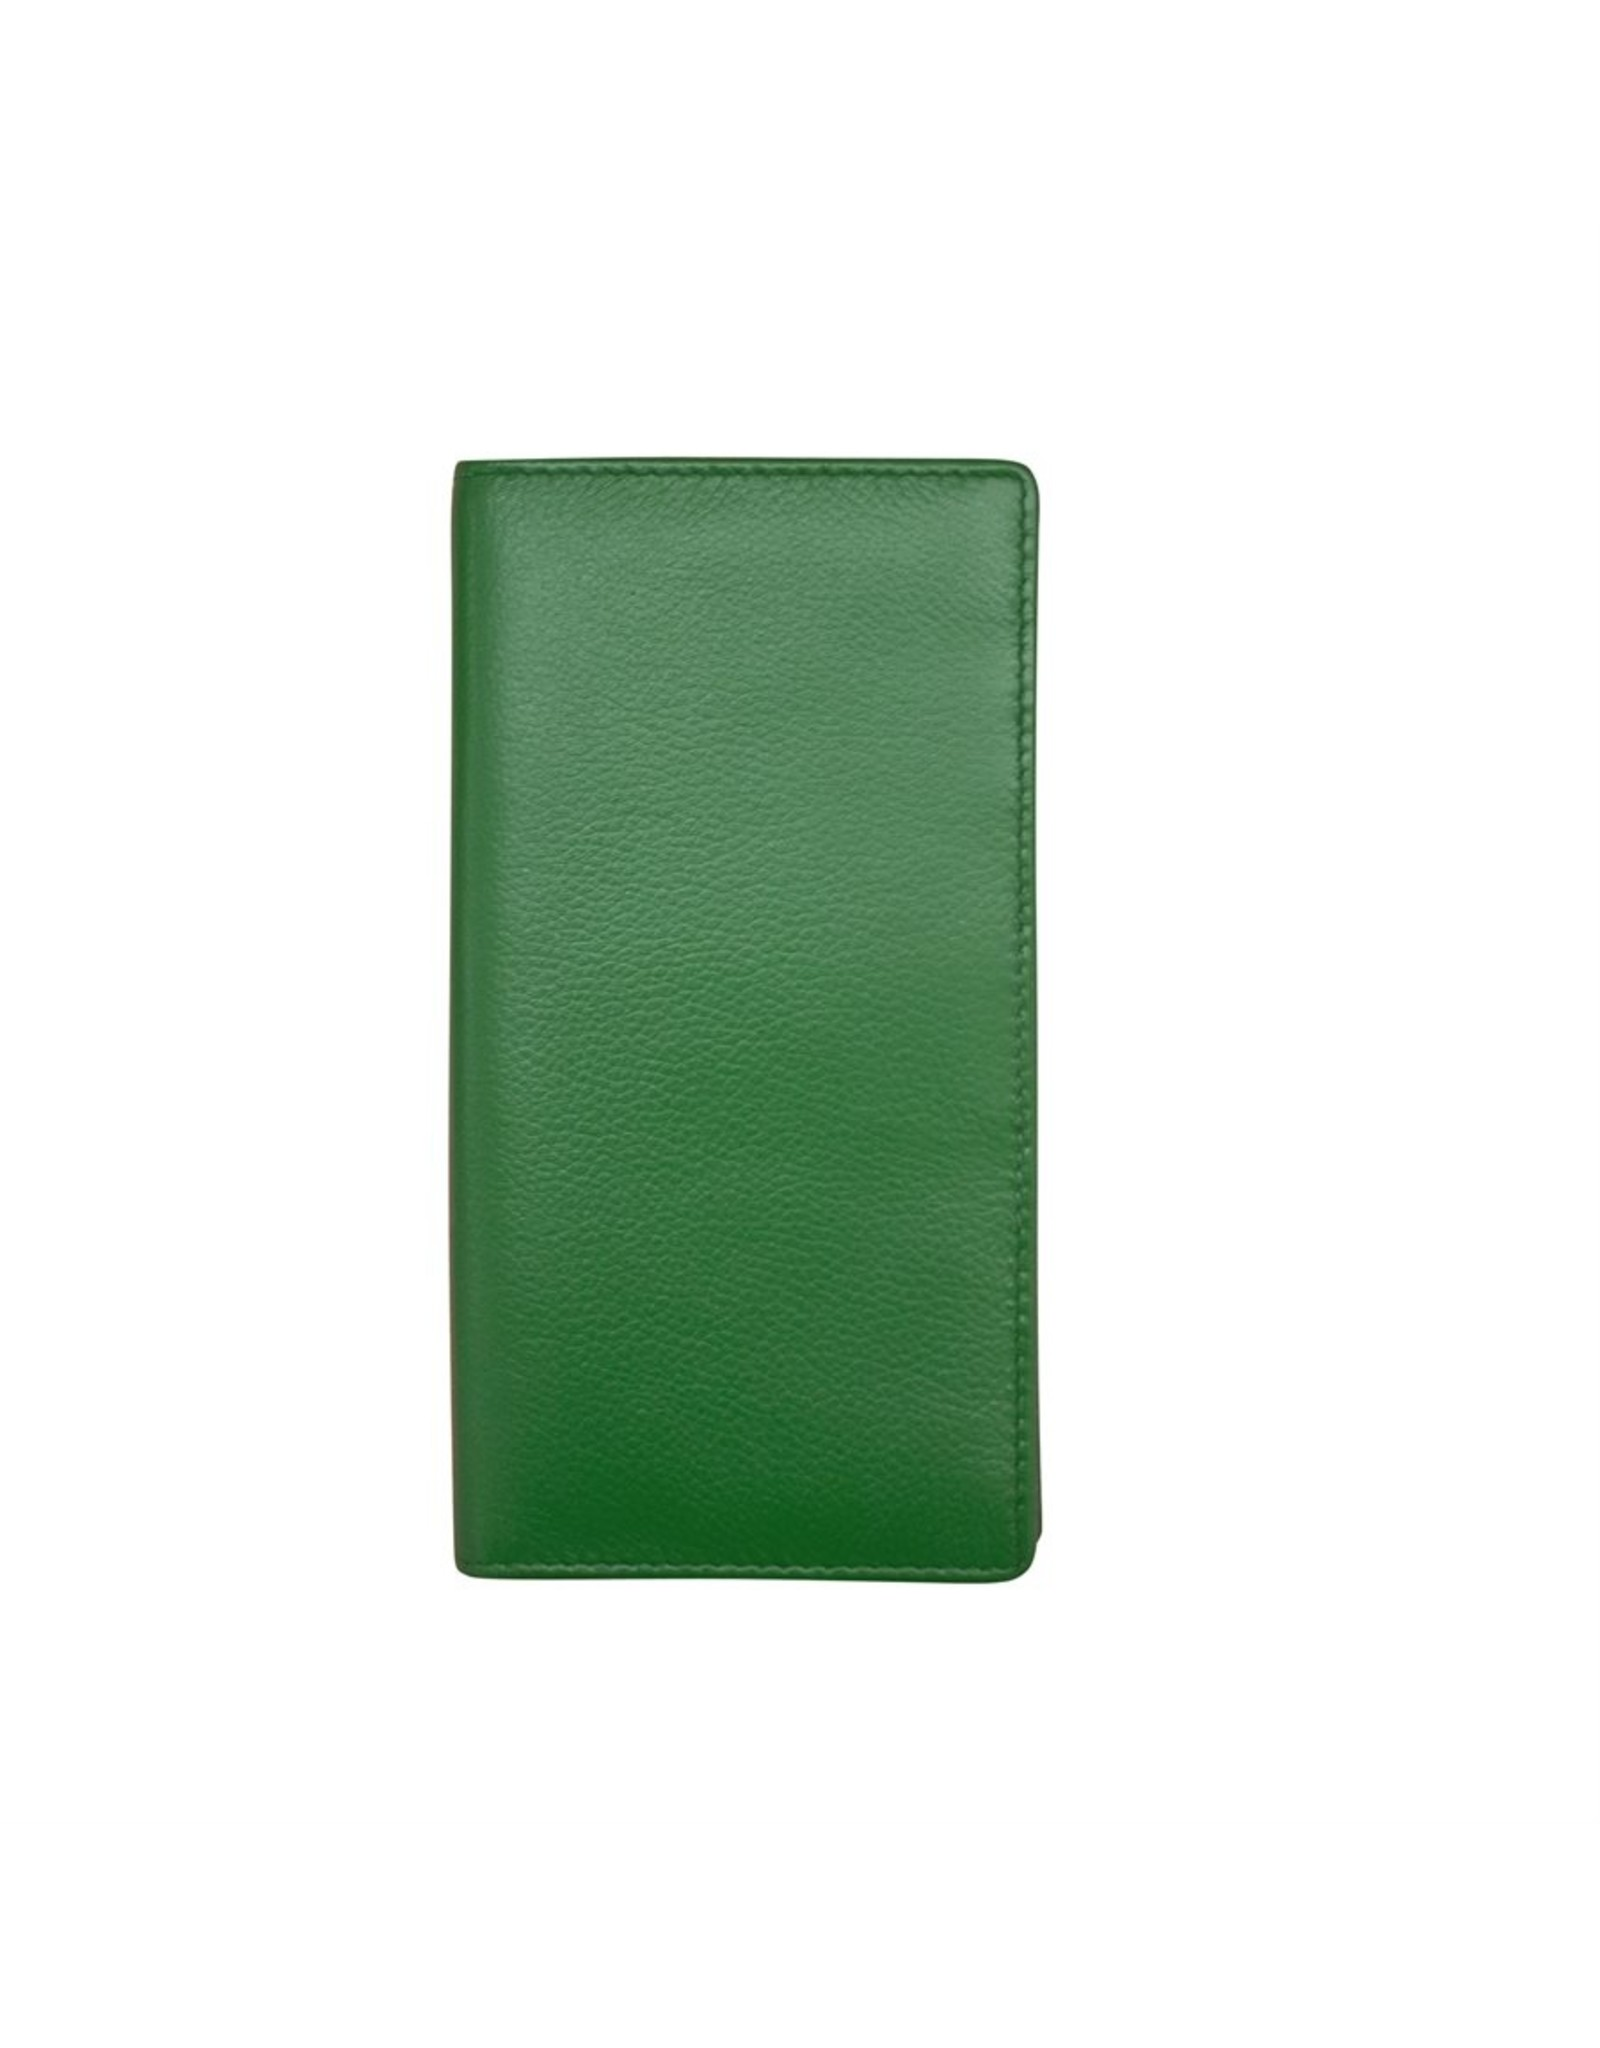 Leather Handbags and Accessories 7406 Checkbook Cover Emerald